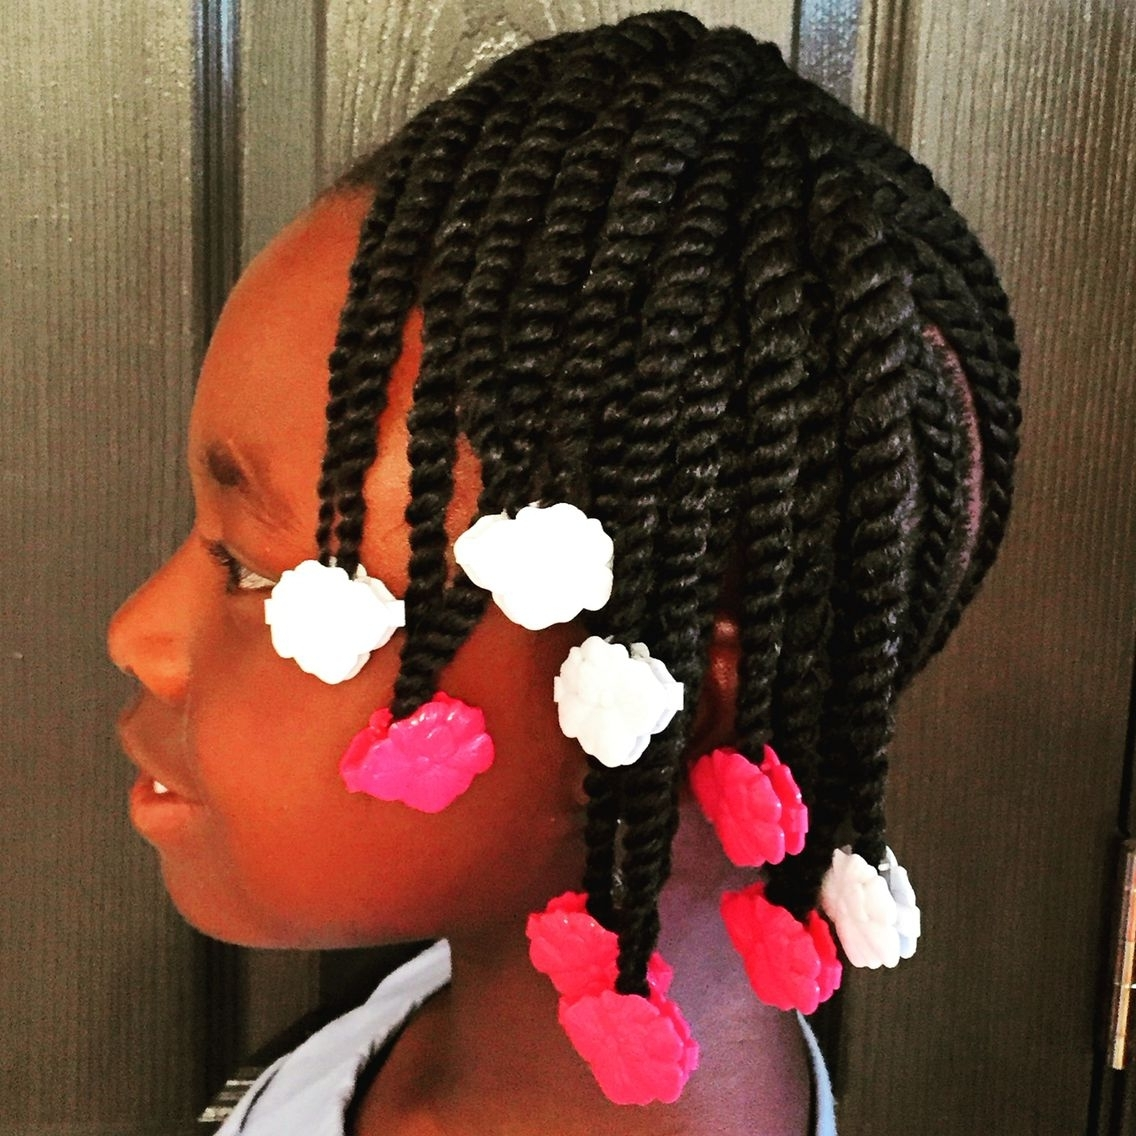 Ready For Easter And Spring Break Thanks To The Hair Geek! Braids In Widely Used Easter Braid Hairstyles (Gallery 8 of 15)